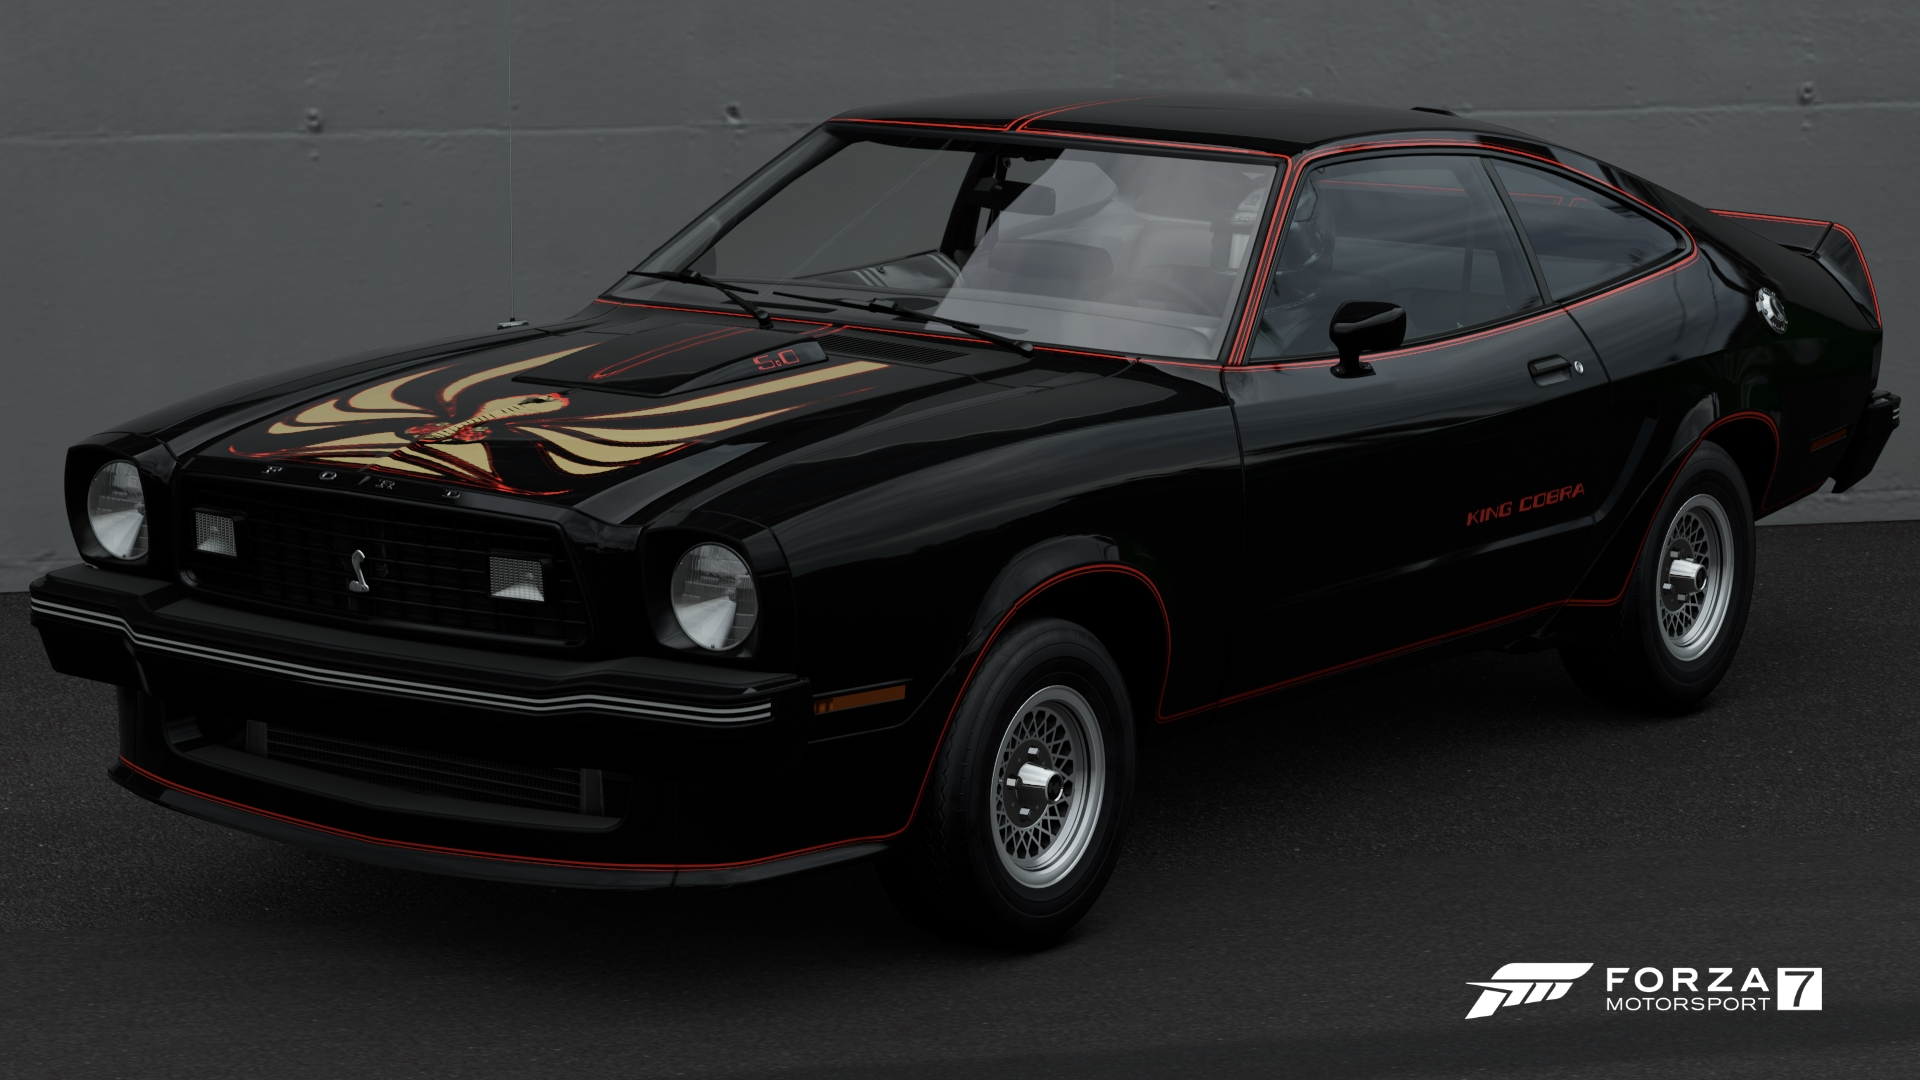 ford mustang ii king cobra forza motorsport wiki fandom powered by wikia. Black Bedroom Furniture Sets. Home Design Ideas